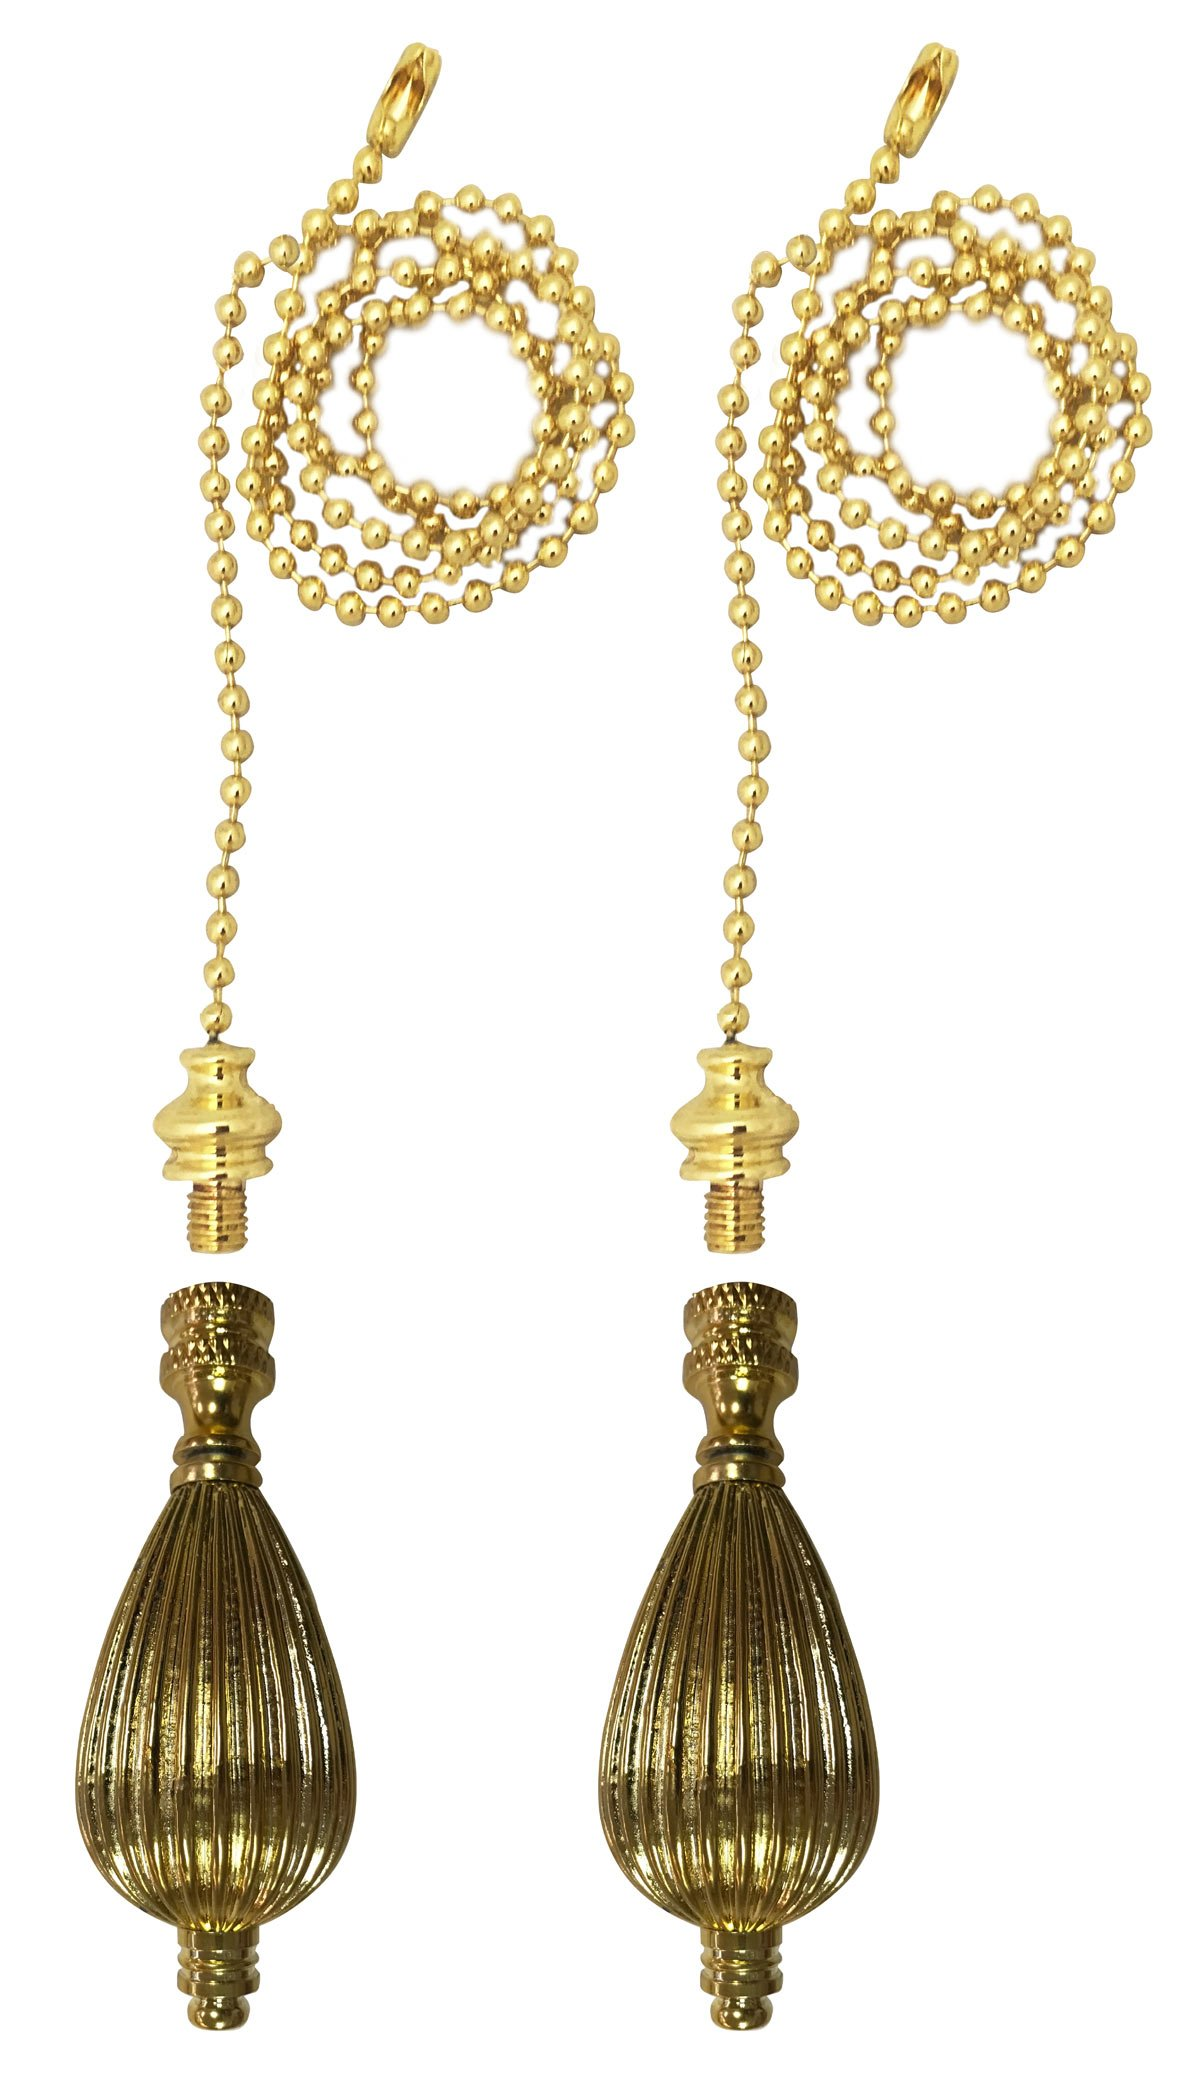 Royal Designs Fan Pull Chain with Vase Shaped Finial - Polished Brass - Set of 2